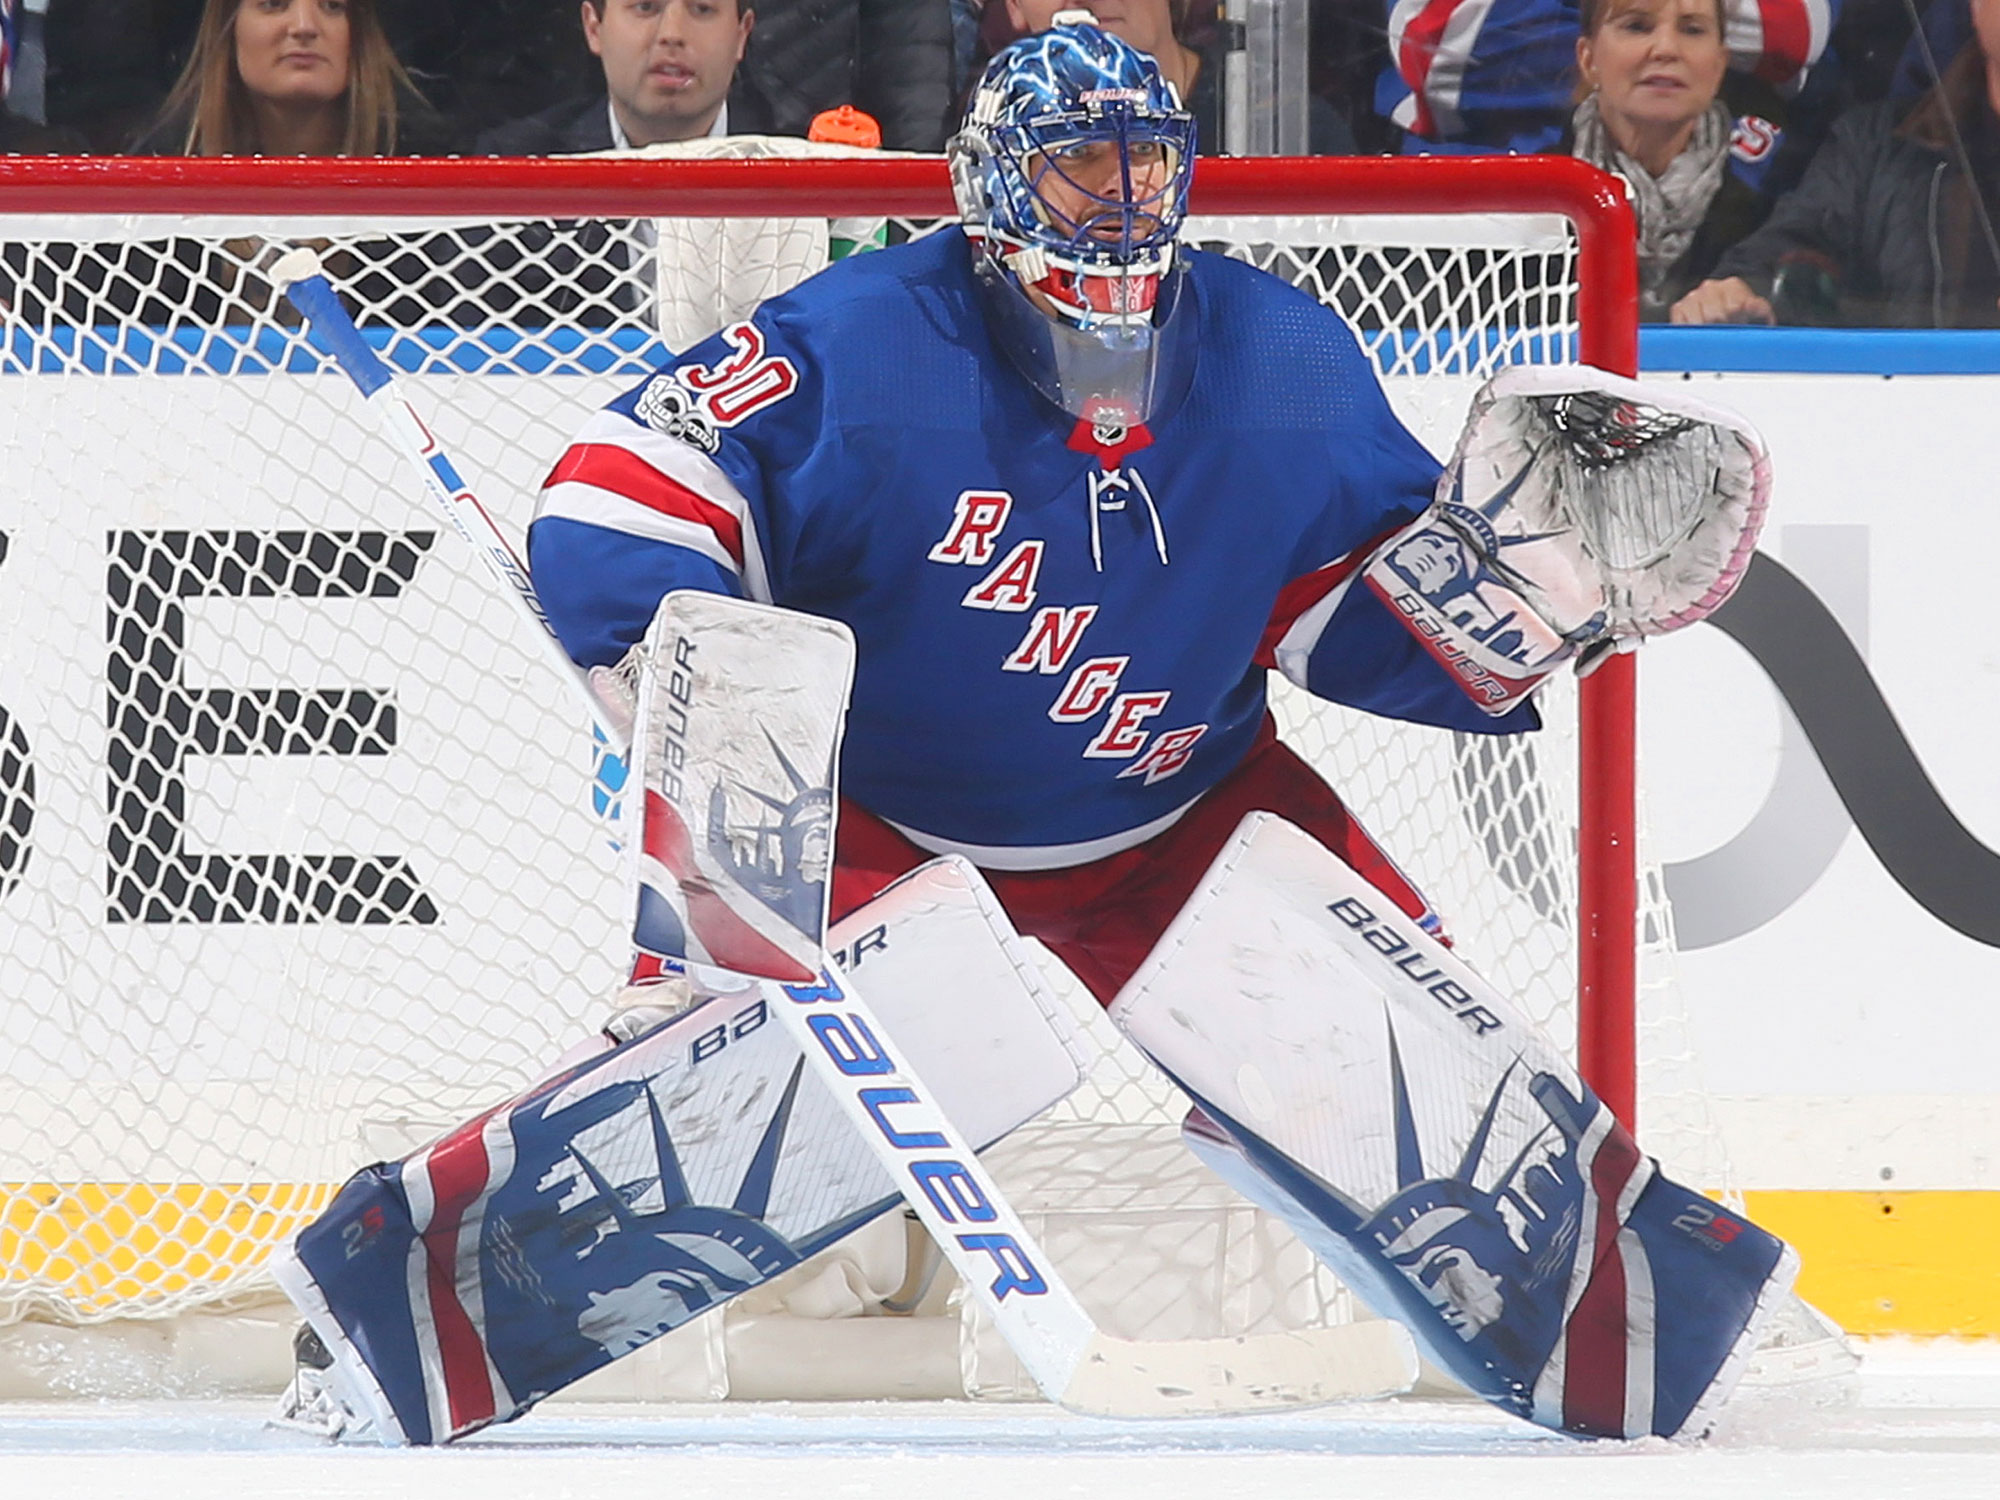 """The Rangers' goalie started his own foundation, an international grant-making organization with the mission statement to """"create positive change in the lives of children and adults throughout the world through education and health services."""" He has partnered with the New York Presbyterian Children's Hospitals, the Ronald McDonald House in Sweden and Together for Better, an organization to help children in poverty in the Dominican Republic."""